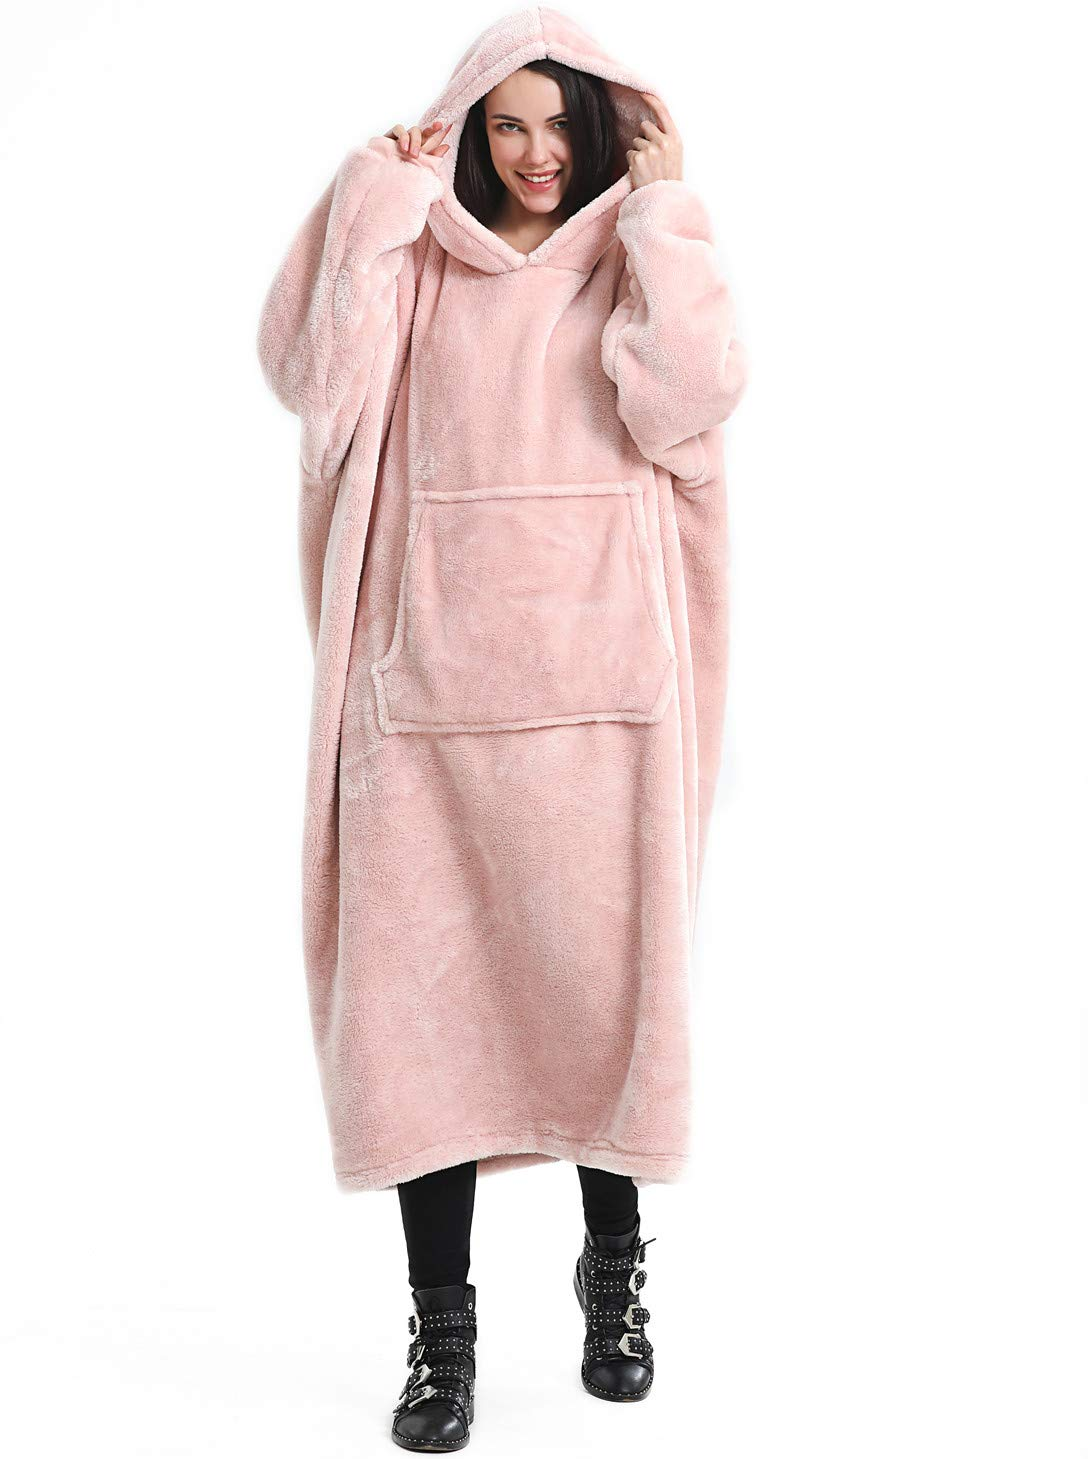 Blanket Sweatshirt, Soft Warm Cozy Plush Hoodie Wearable Blanket with Giant Pocket, One Size Fit All - Pink